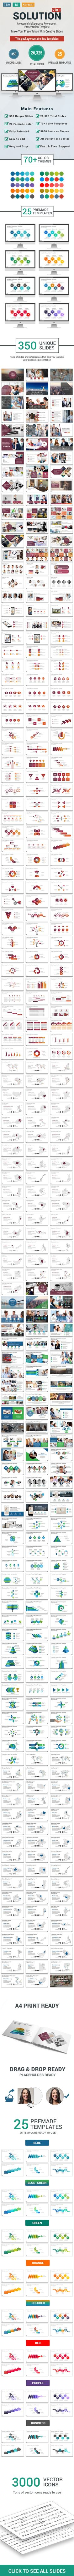 Solution PowerPoint Presentation Template Bundle. Download here: https://graphicriver.net/item/solution-powerpoint-presentation-template-bundle/17053142?ref=ksioks